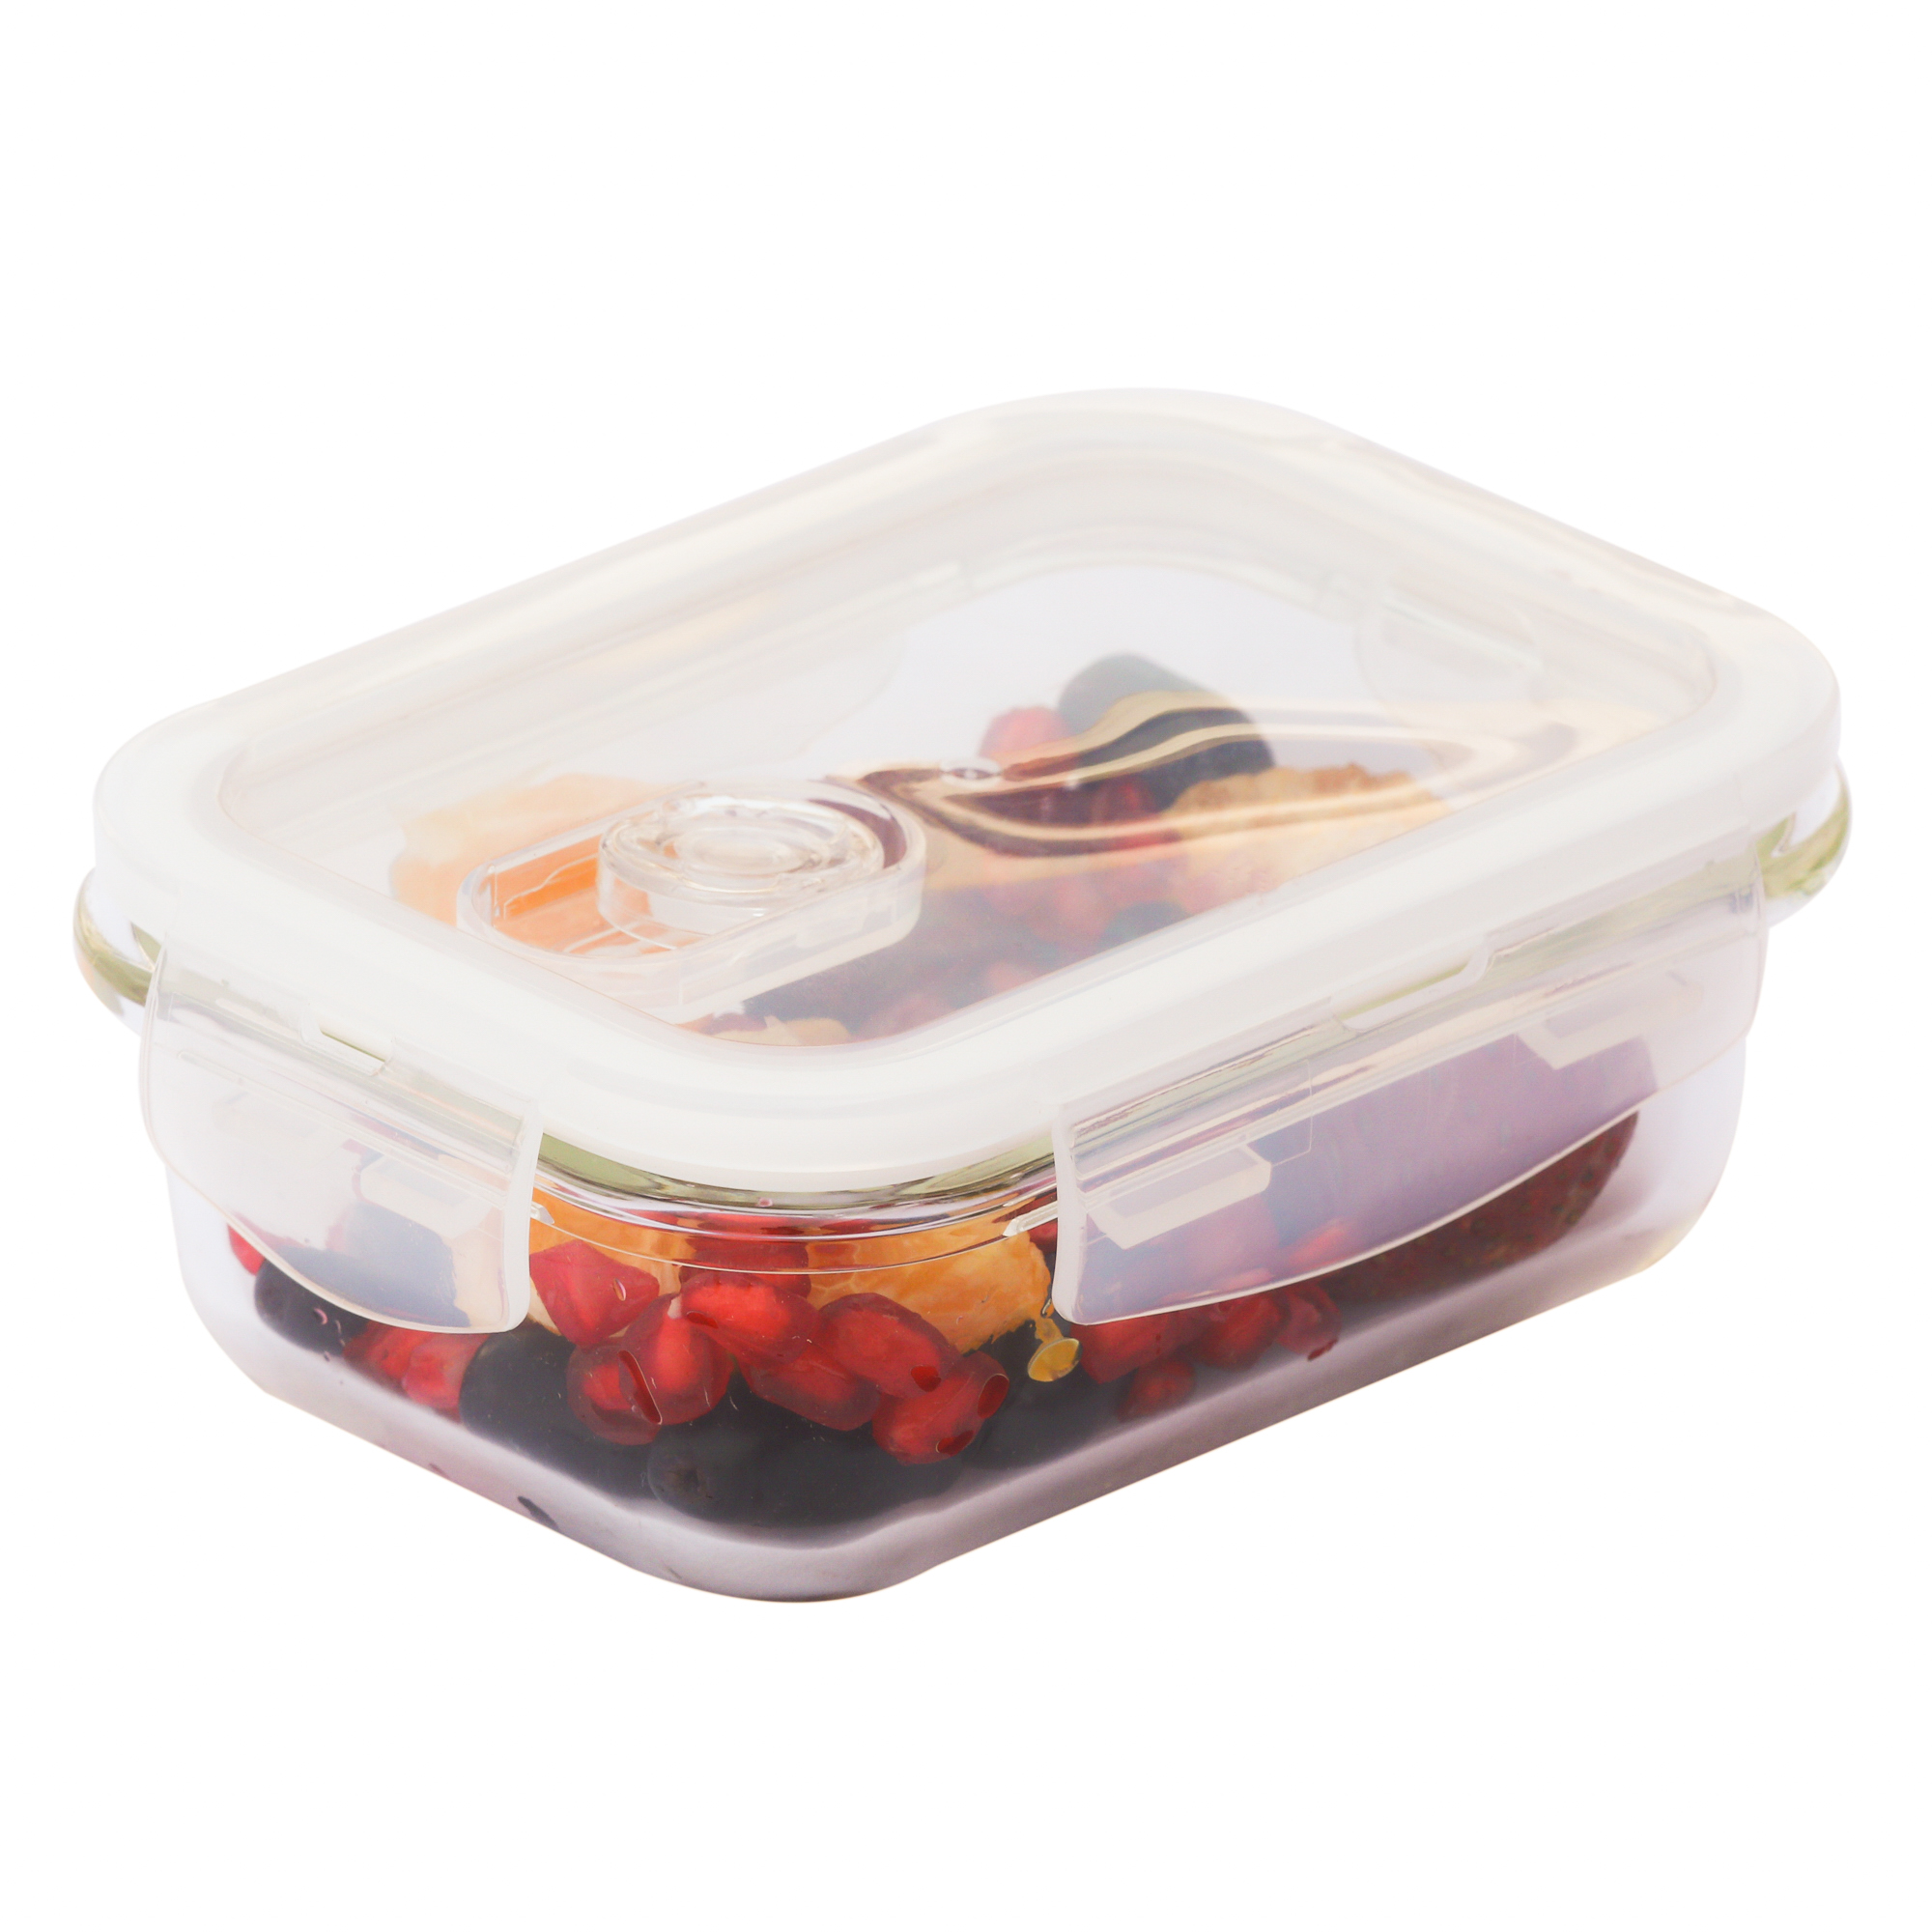 Femora Borosilicate Glass Rectangular Container with Air Vent Lid 620 ML